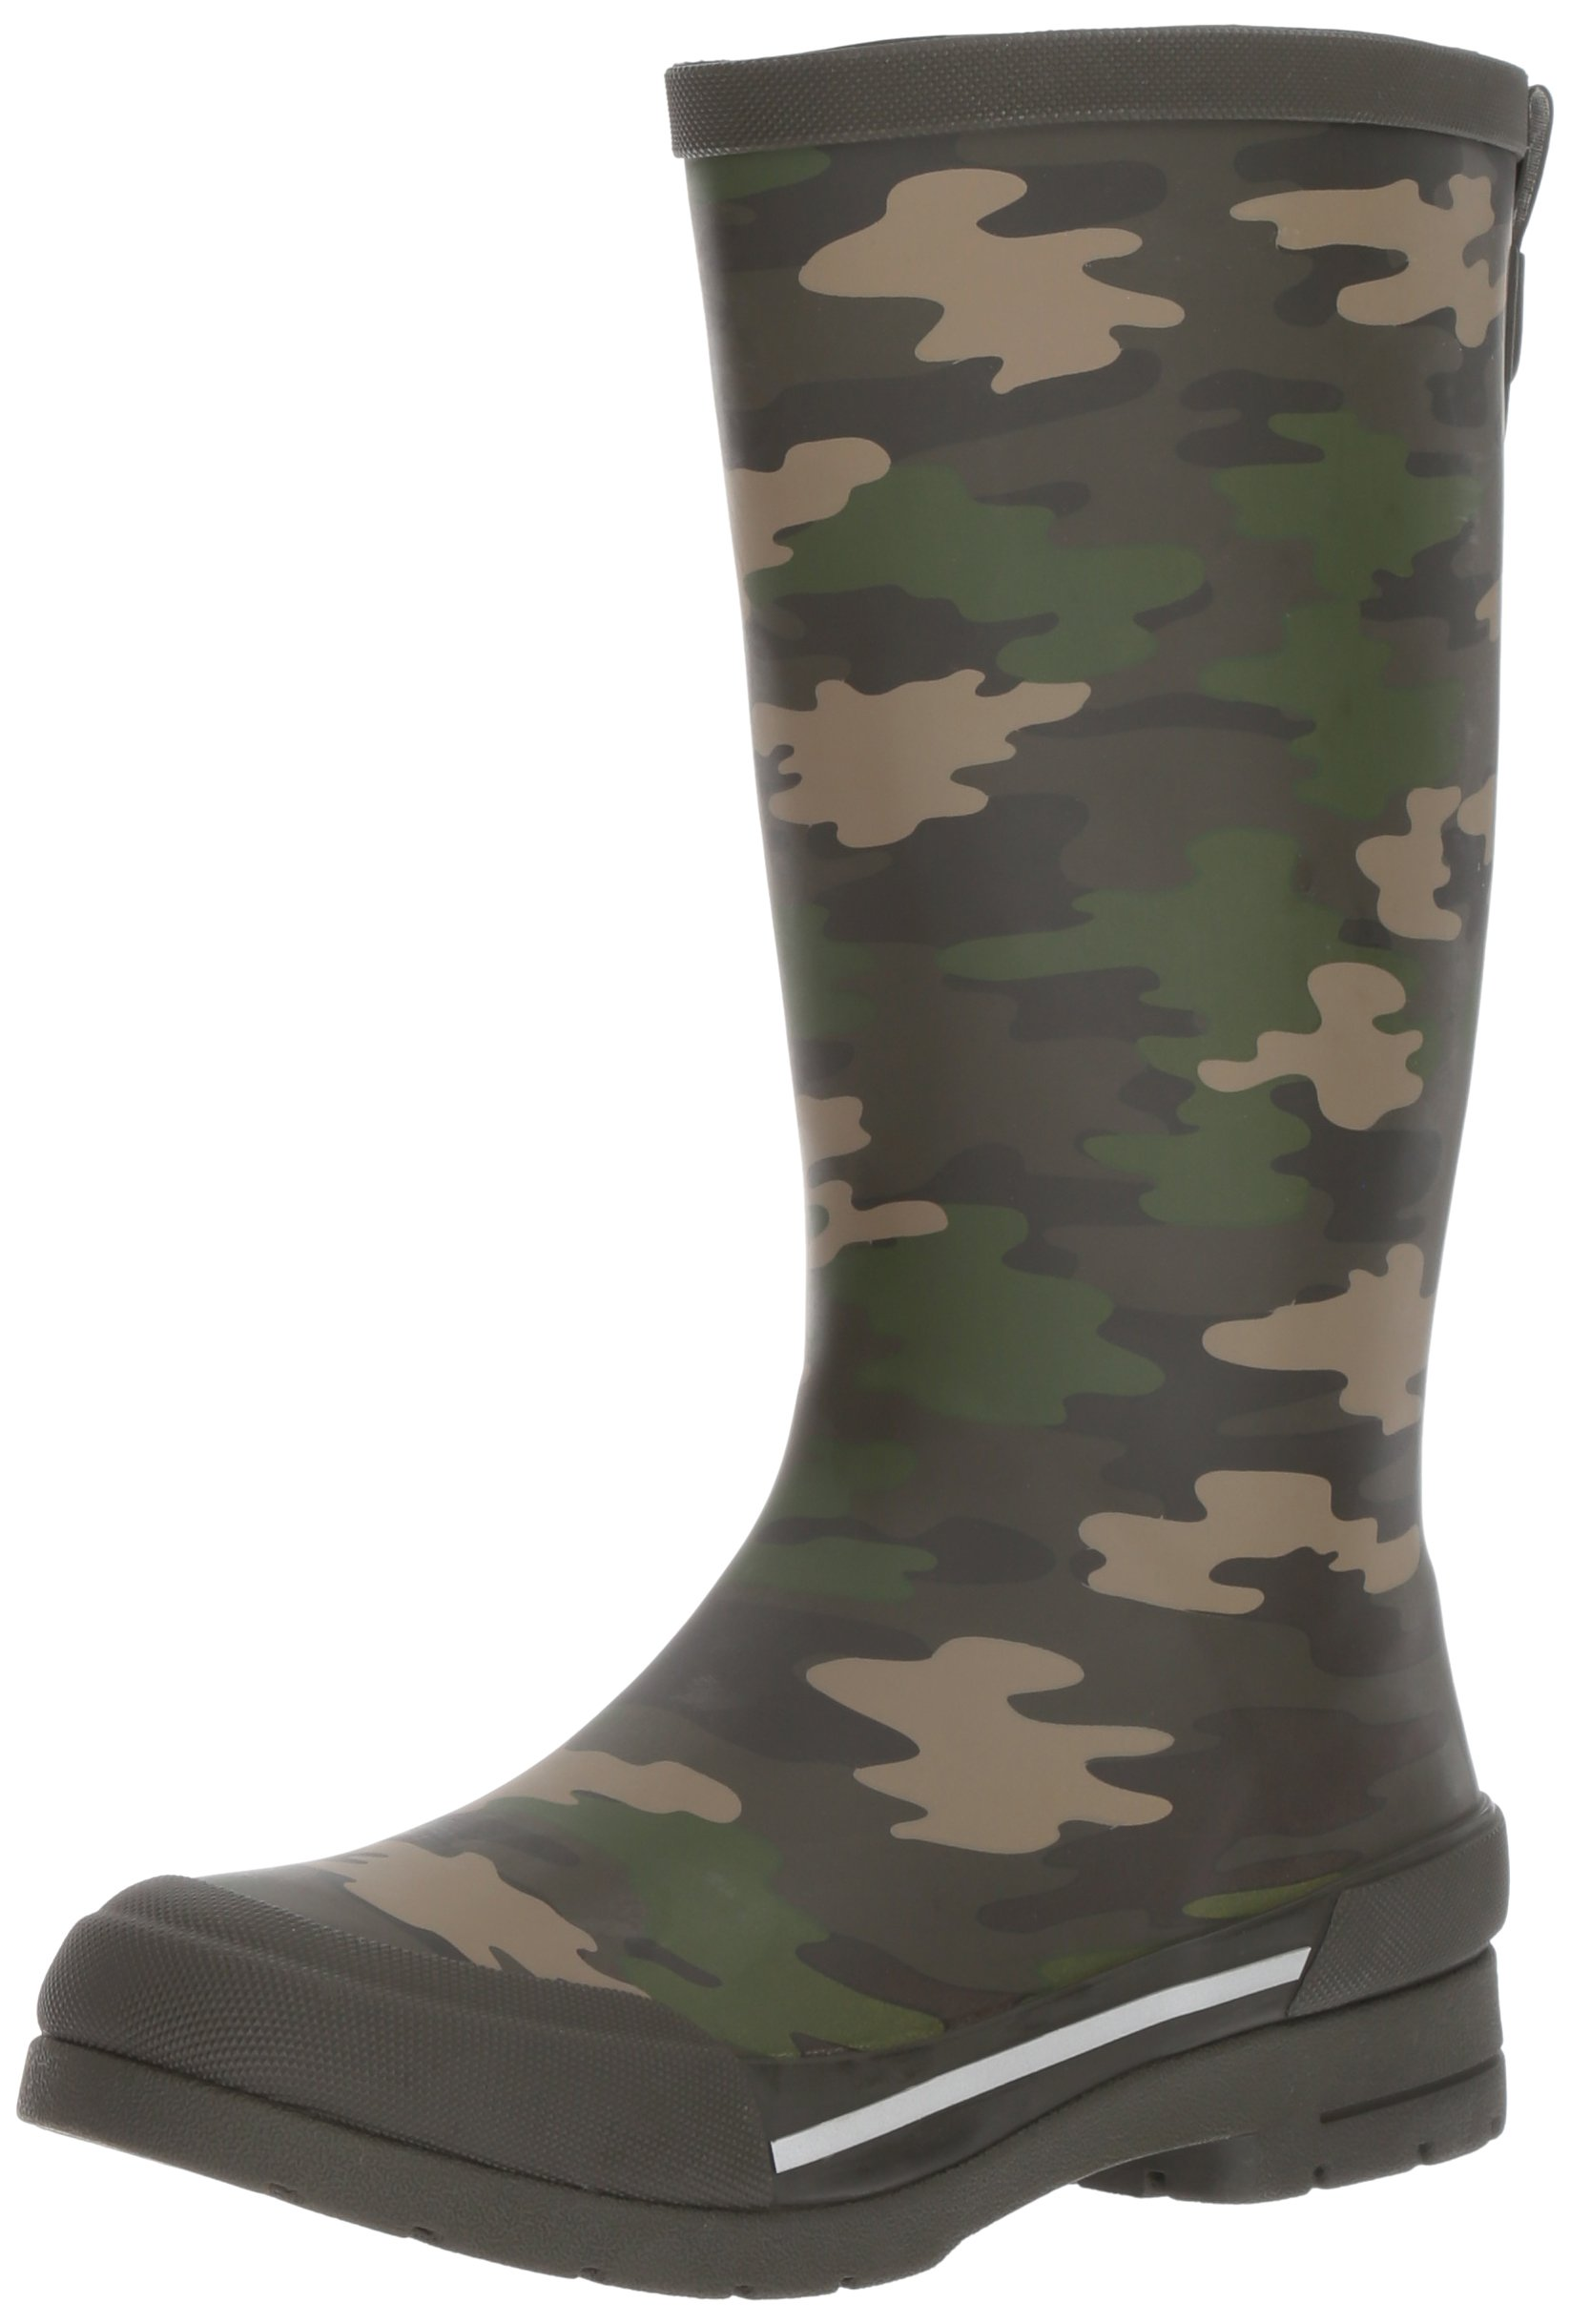 Western Chief Boys Waterproof Classic Youth Size Rain Boots, Camo Green, 2 M US Little Kid